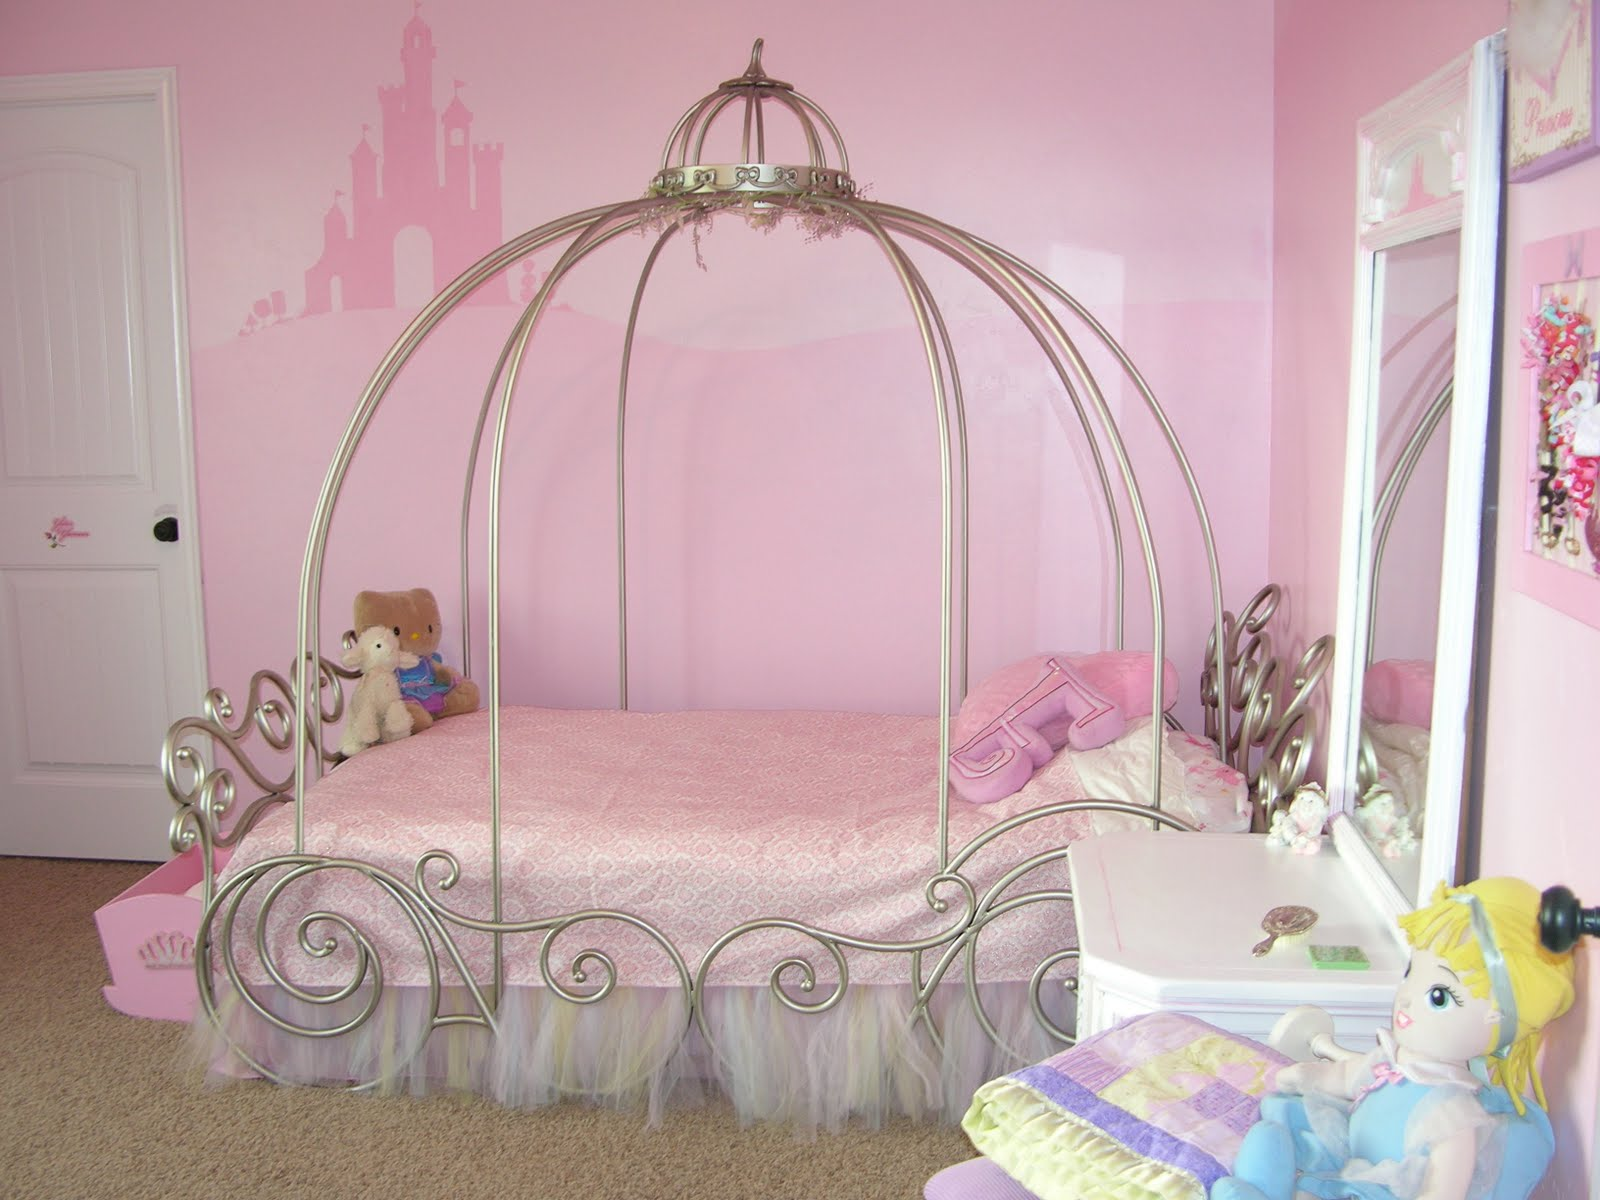 Bedroom decorations for girls Photo - 1